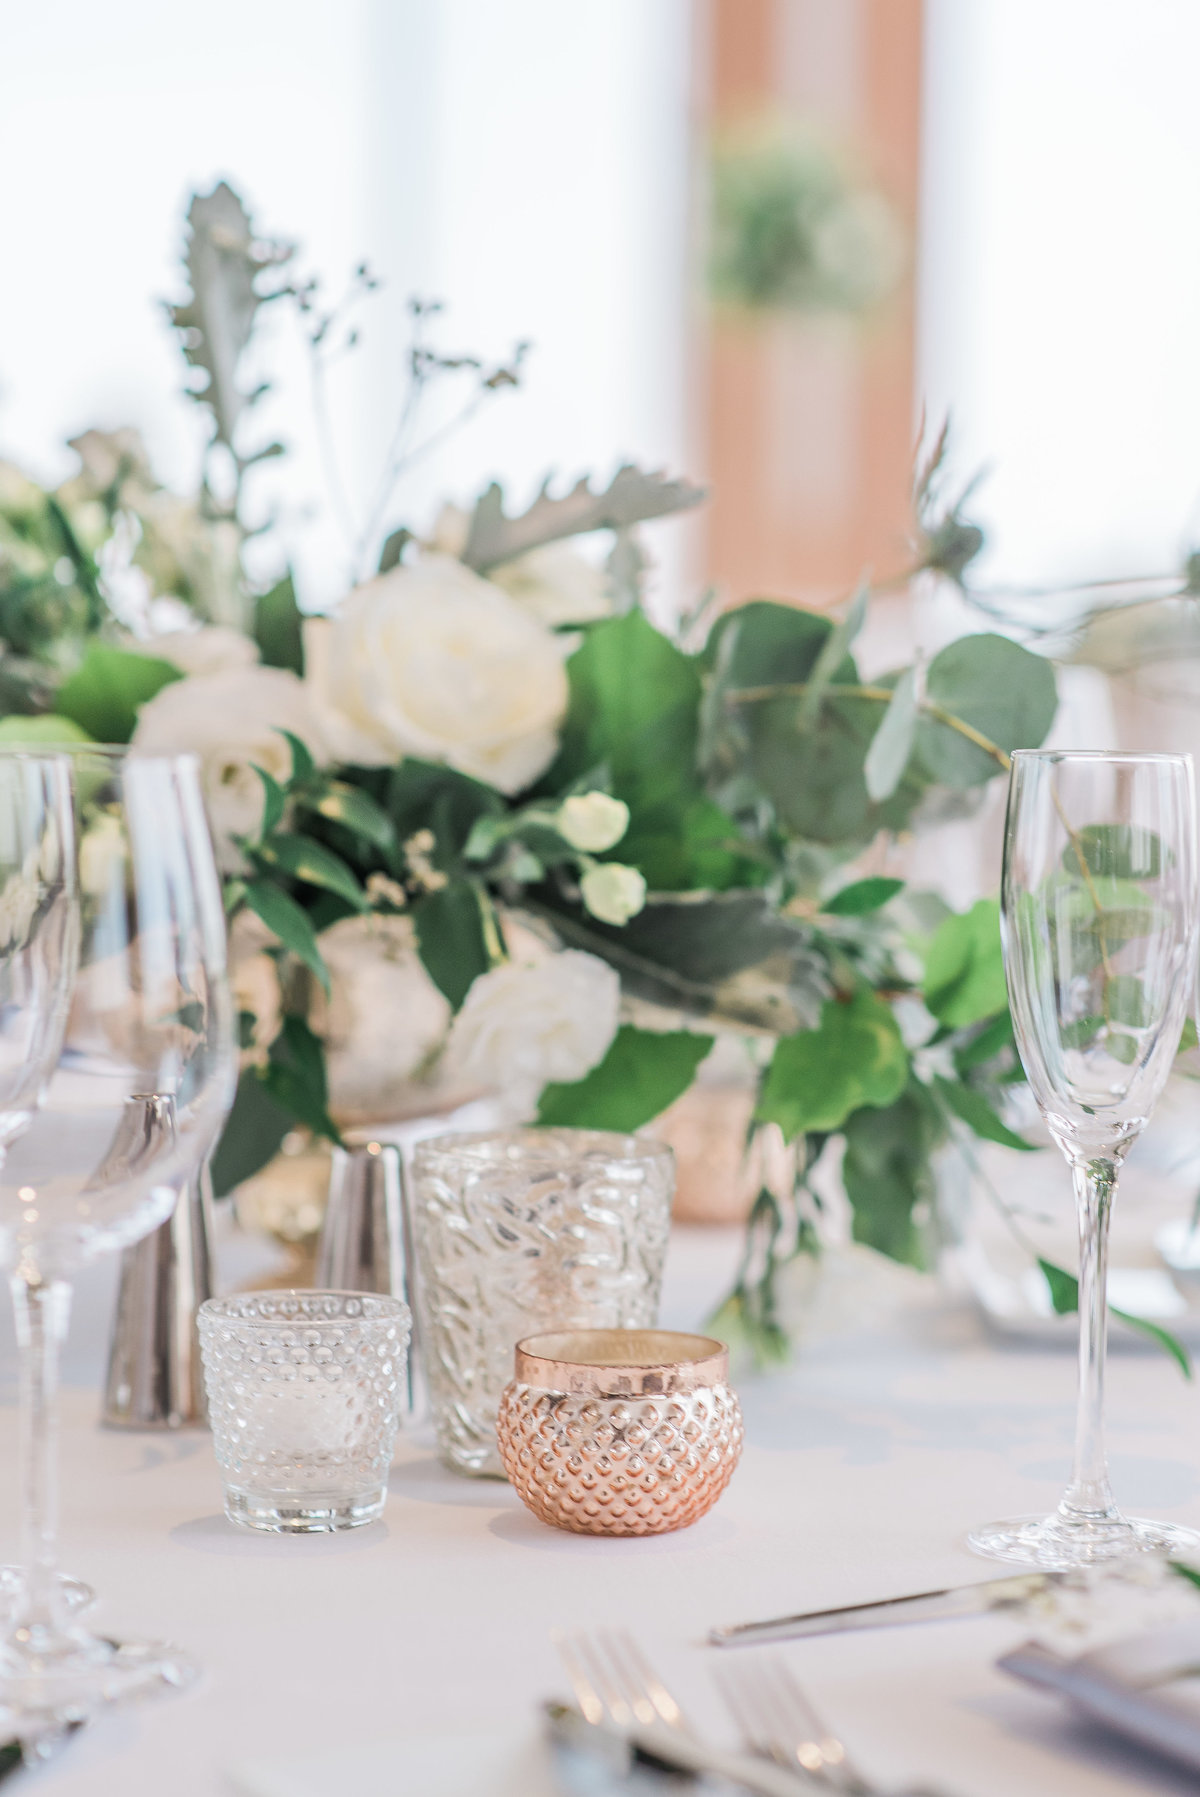 0029_Sage_Designs_at_Westin_22_White_florals_and_fresh_greens___Photography_by_Emma